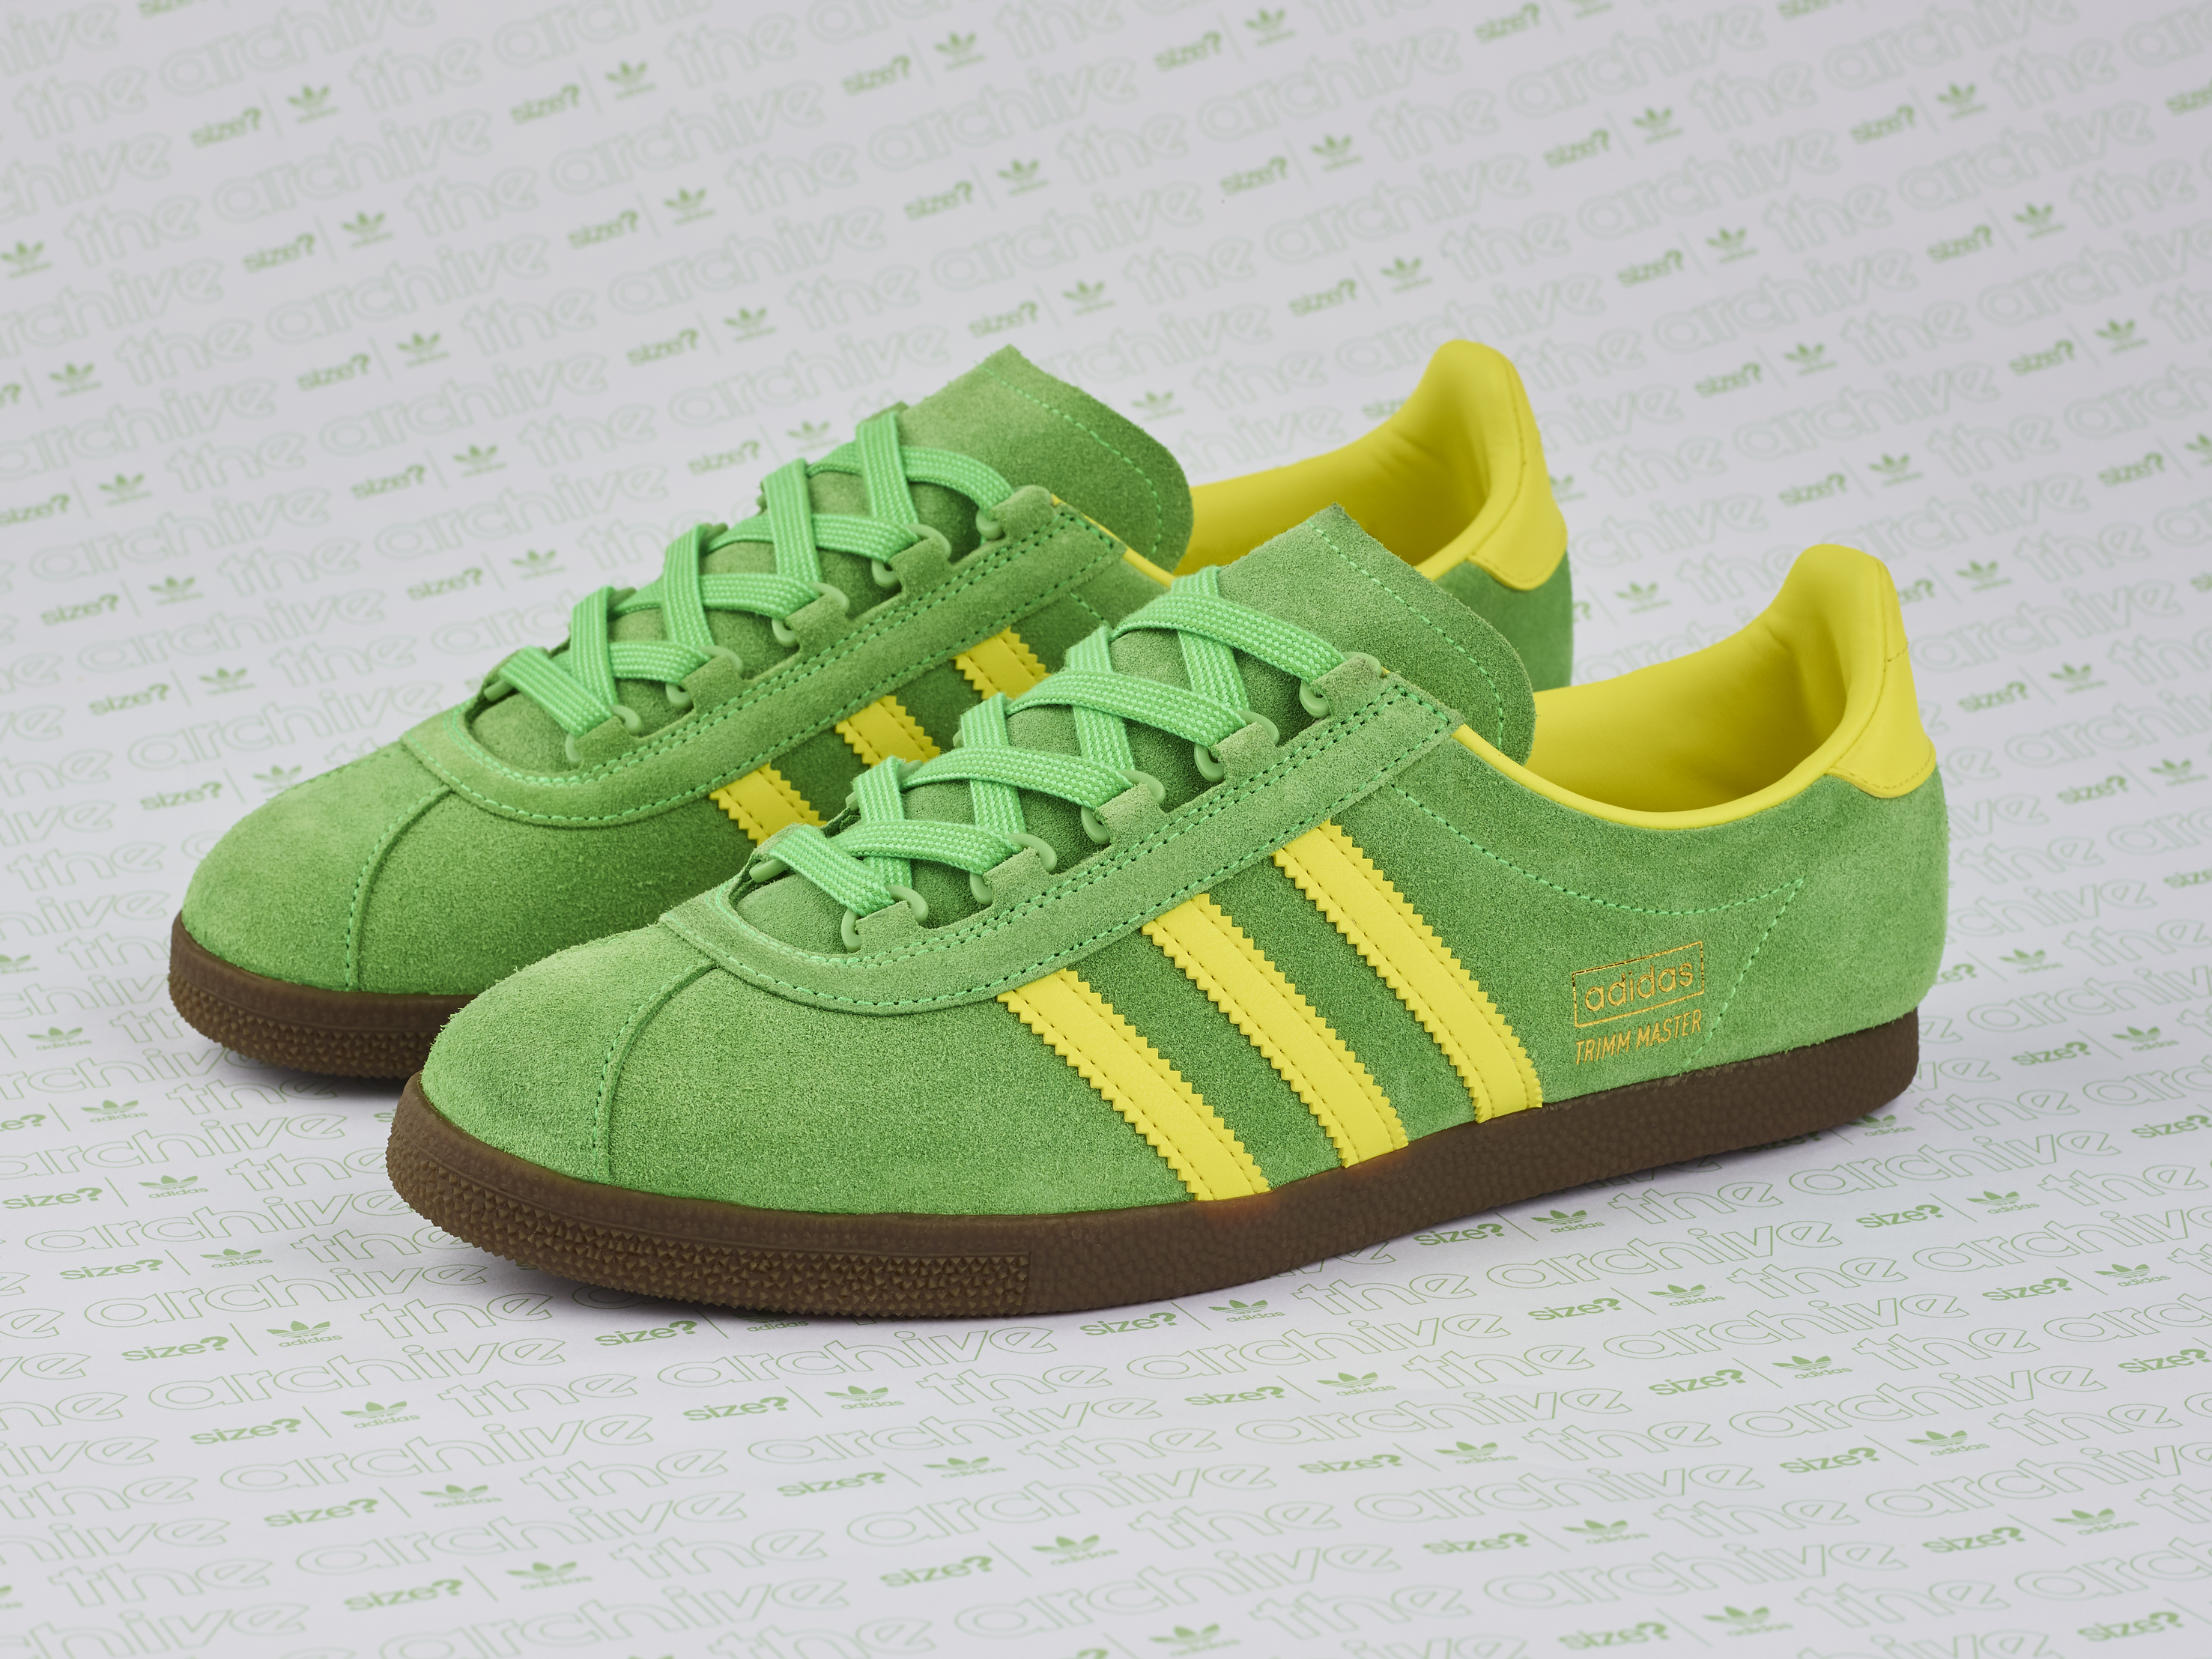 adidas Originals Archive Trimm Master OG Lime/Yellow – size? Exclusive